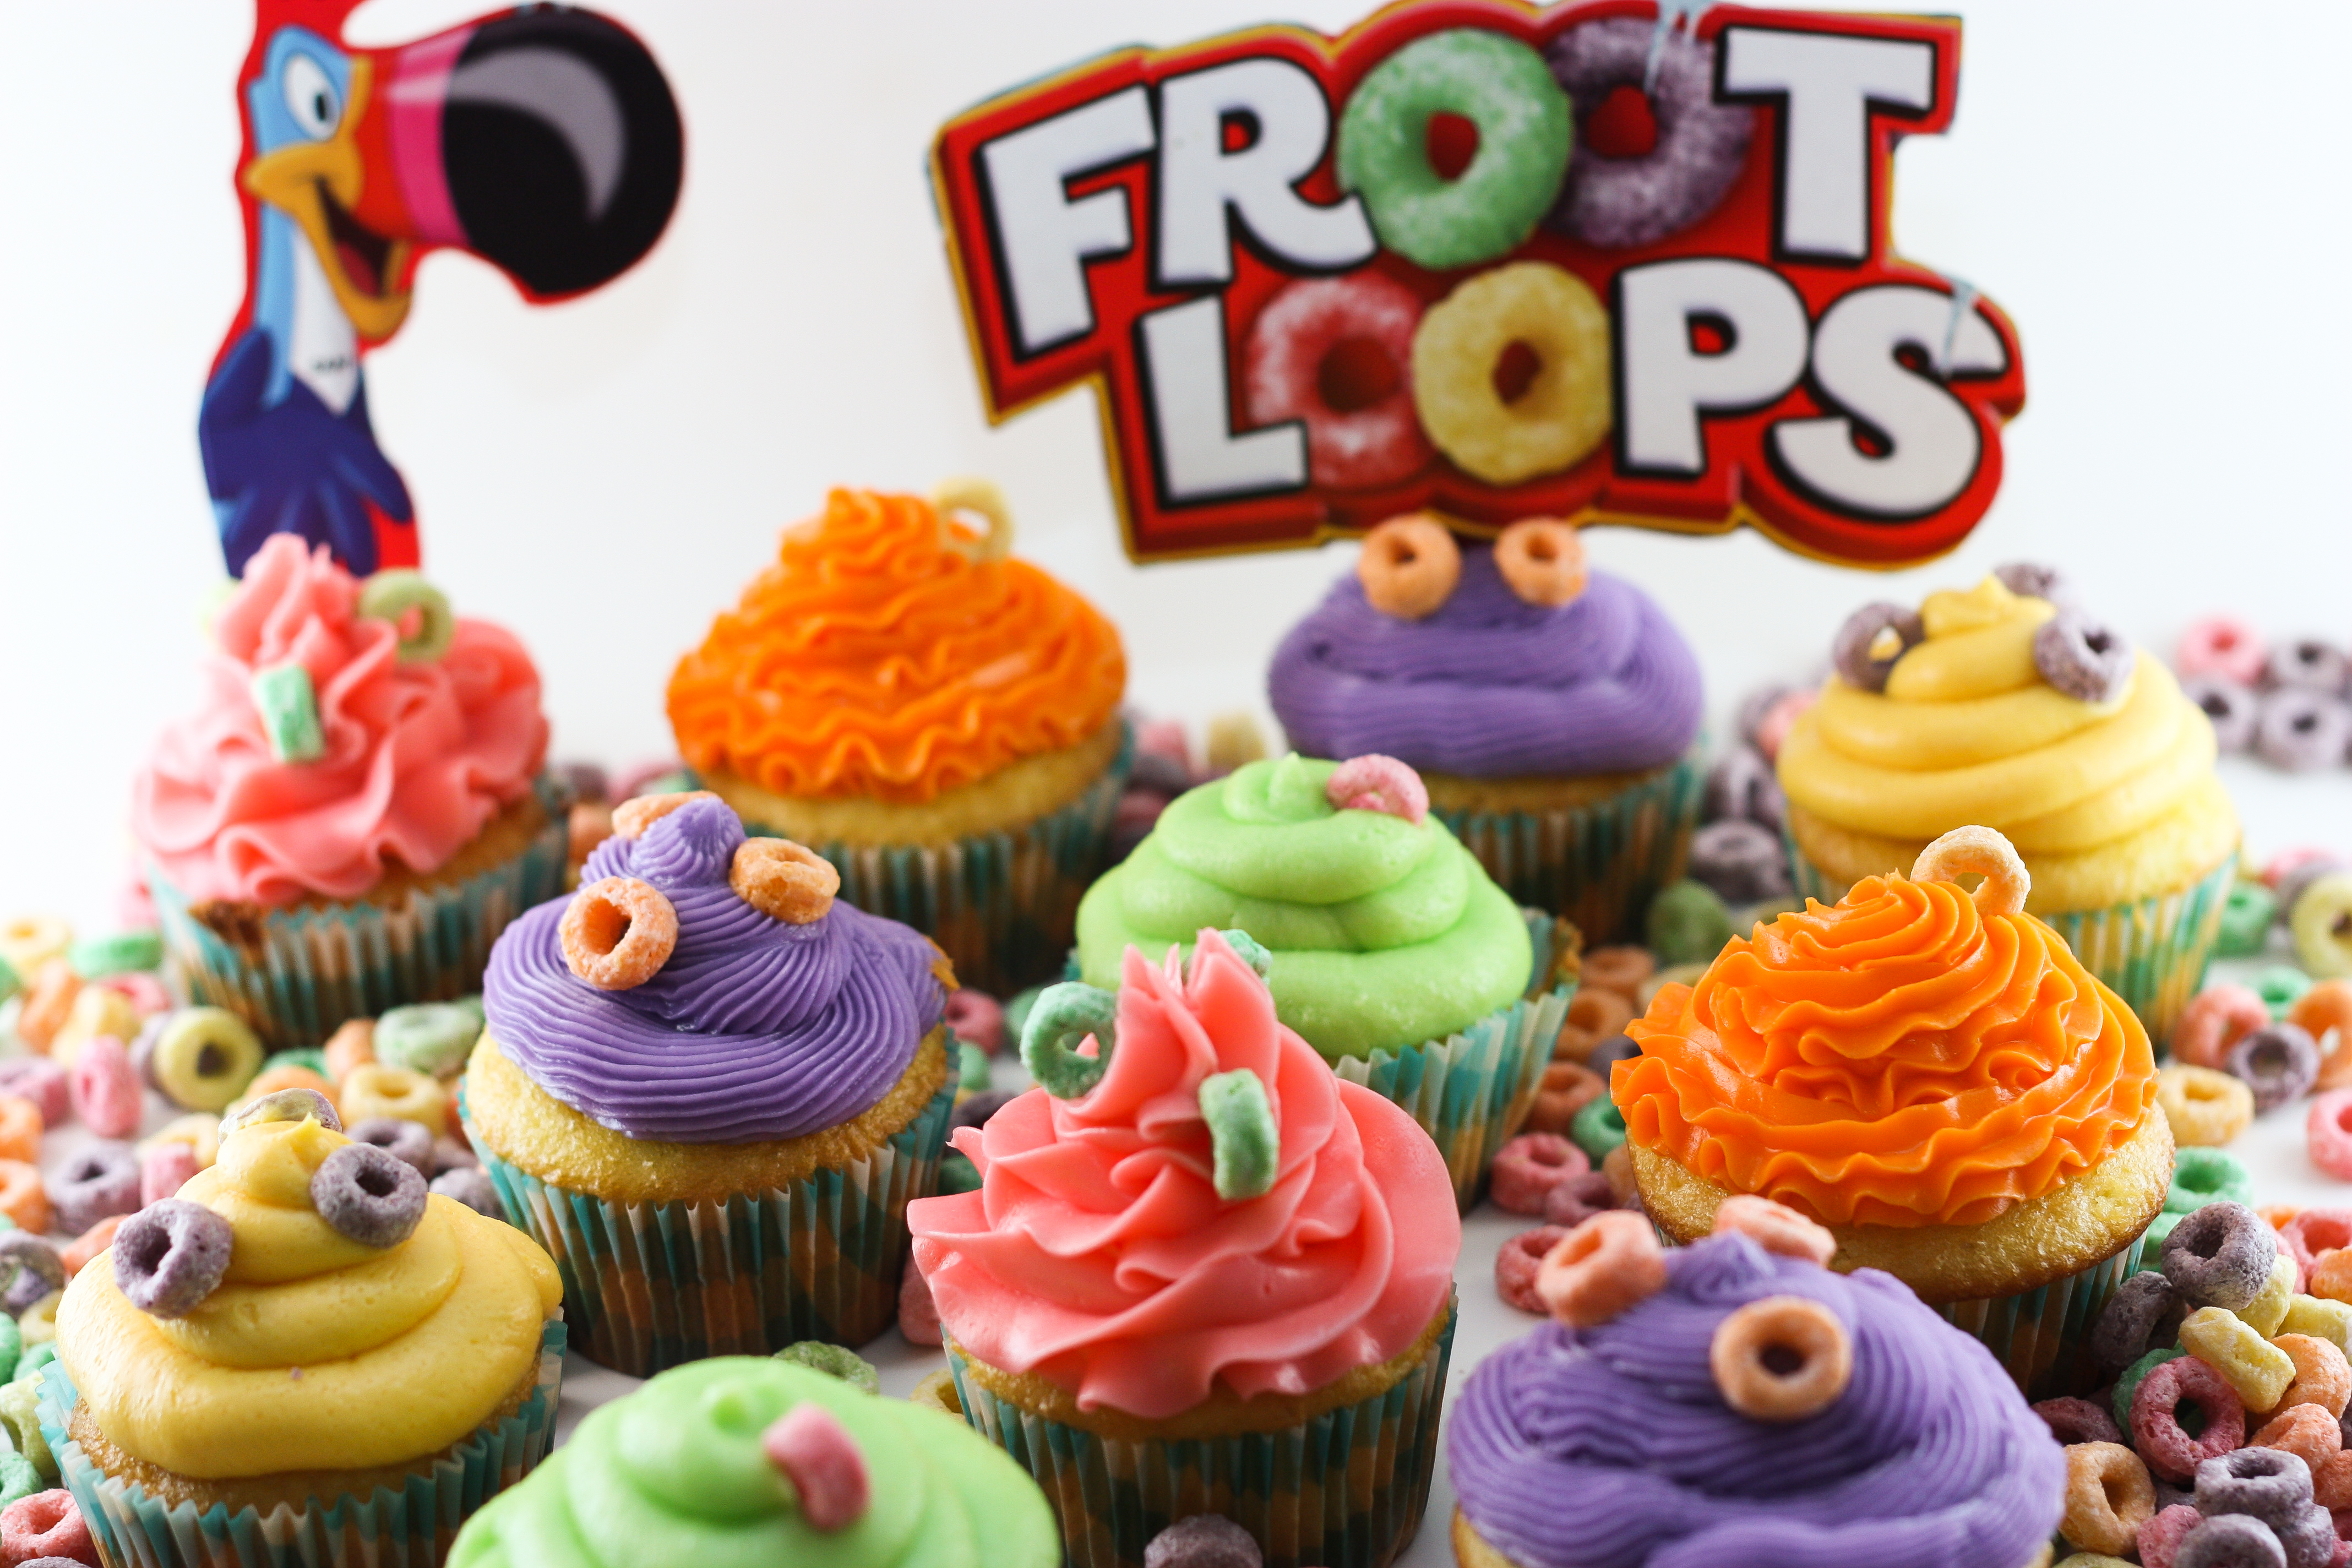 Fruit Loop Cupcakes